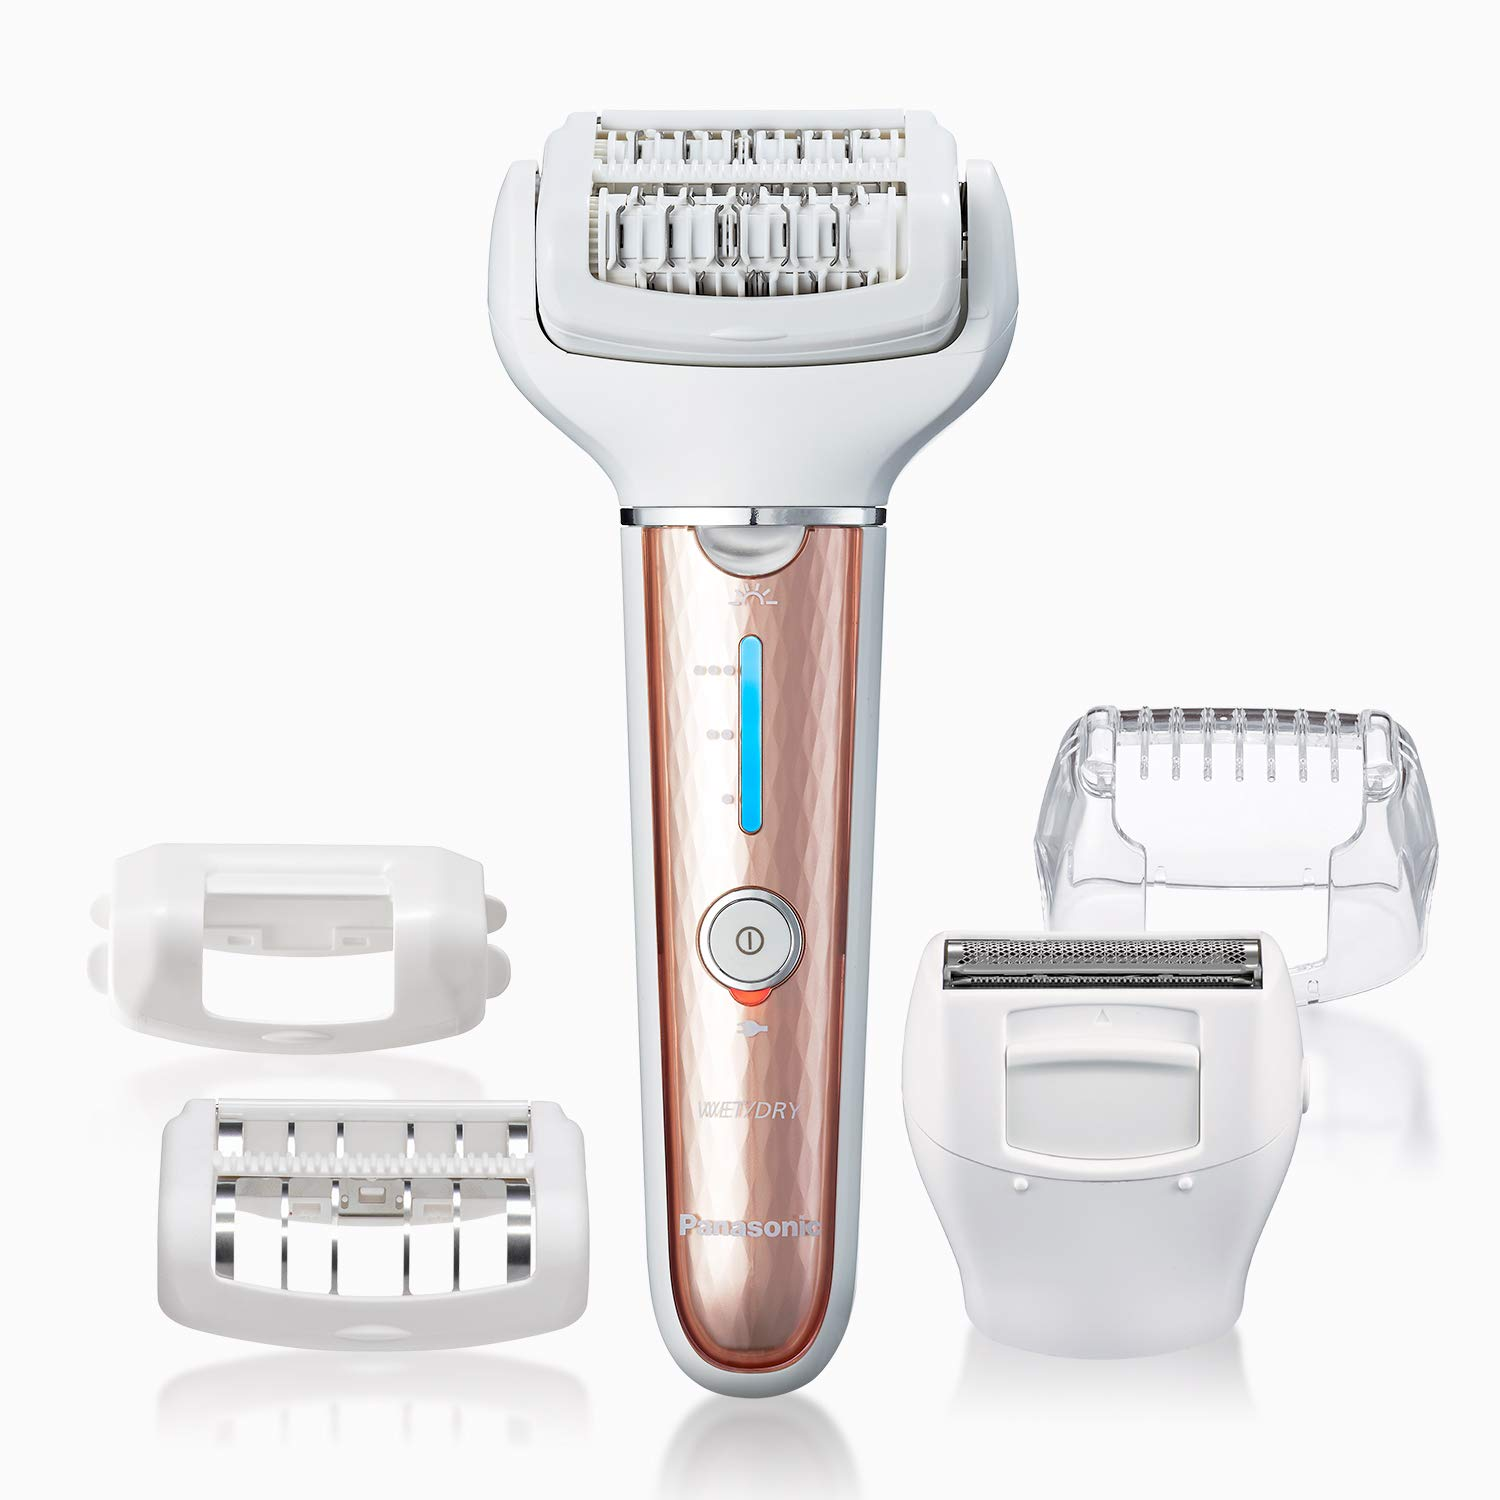 Panasonic Cordless Versatile Wet/Dry Shaver & Epilator For Women With 5 Attachments, Gentle Hair Removal for Women's Legs, Arms, Bikini - ES-EL7A-P (Pink)